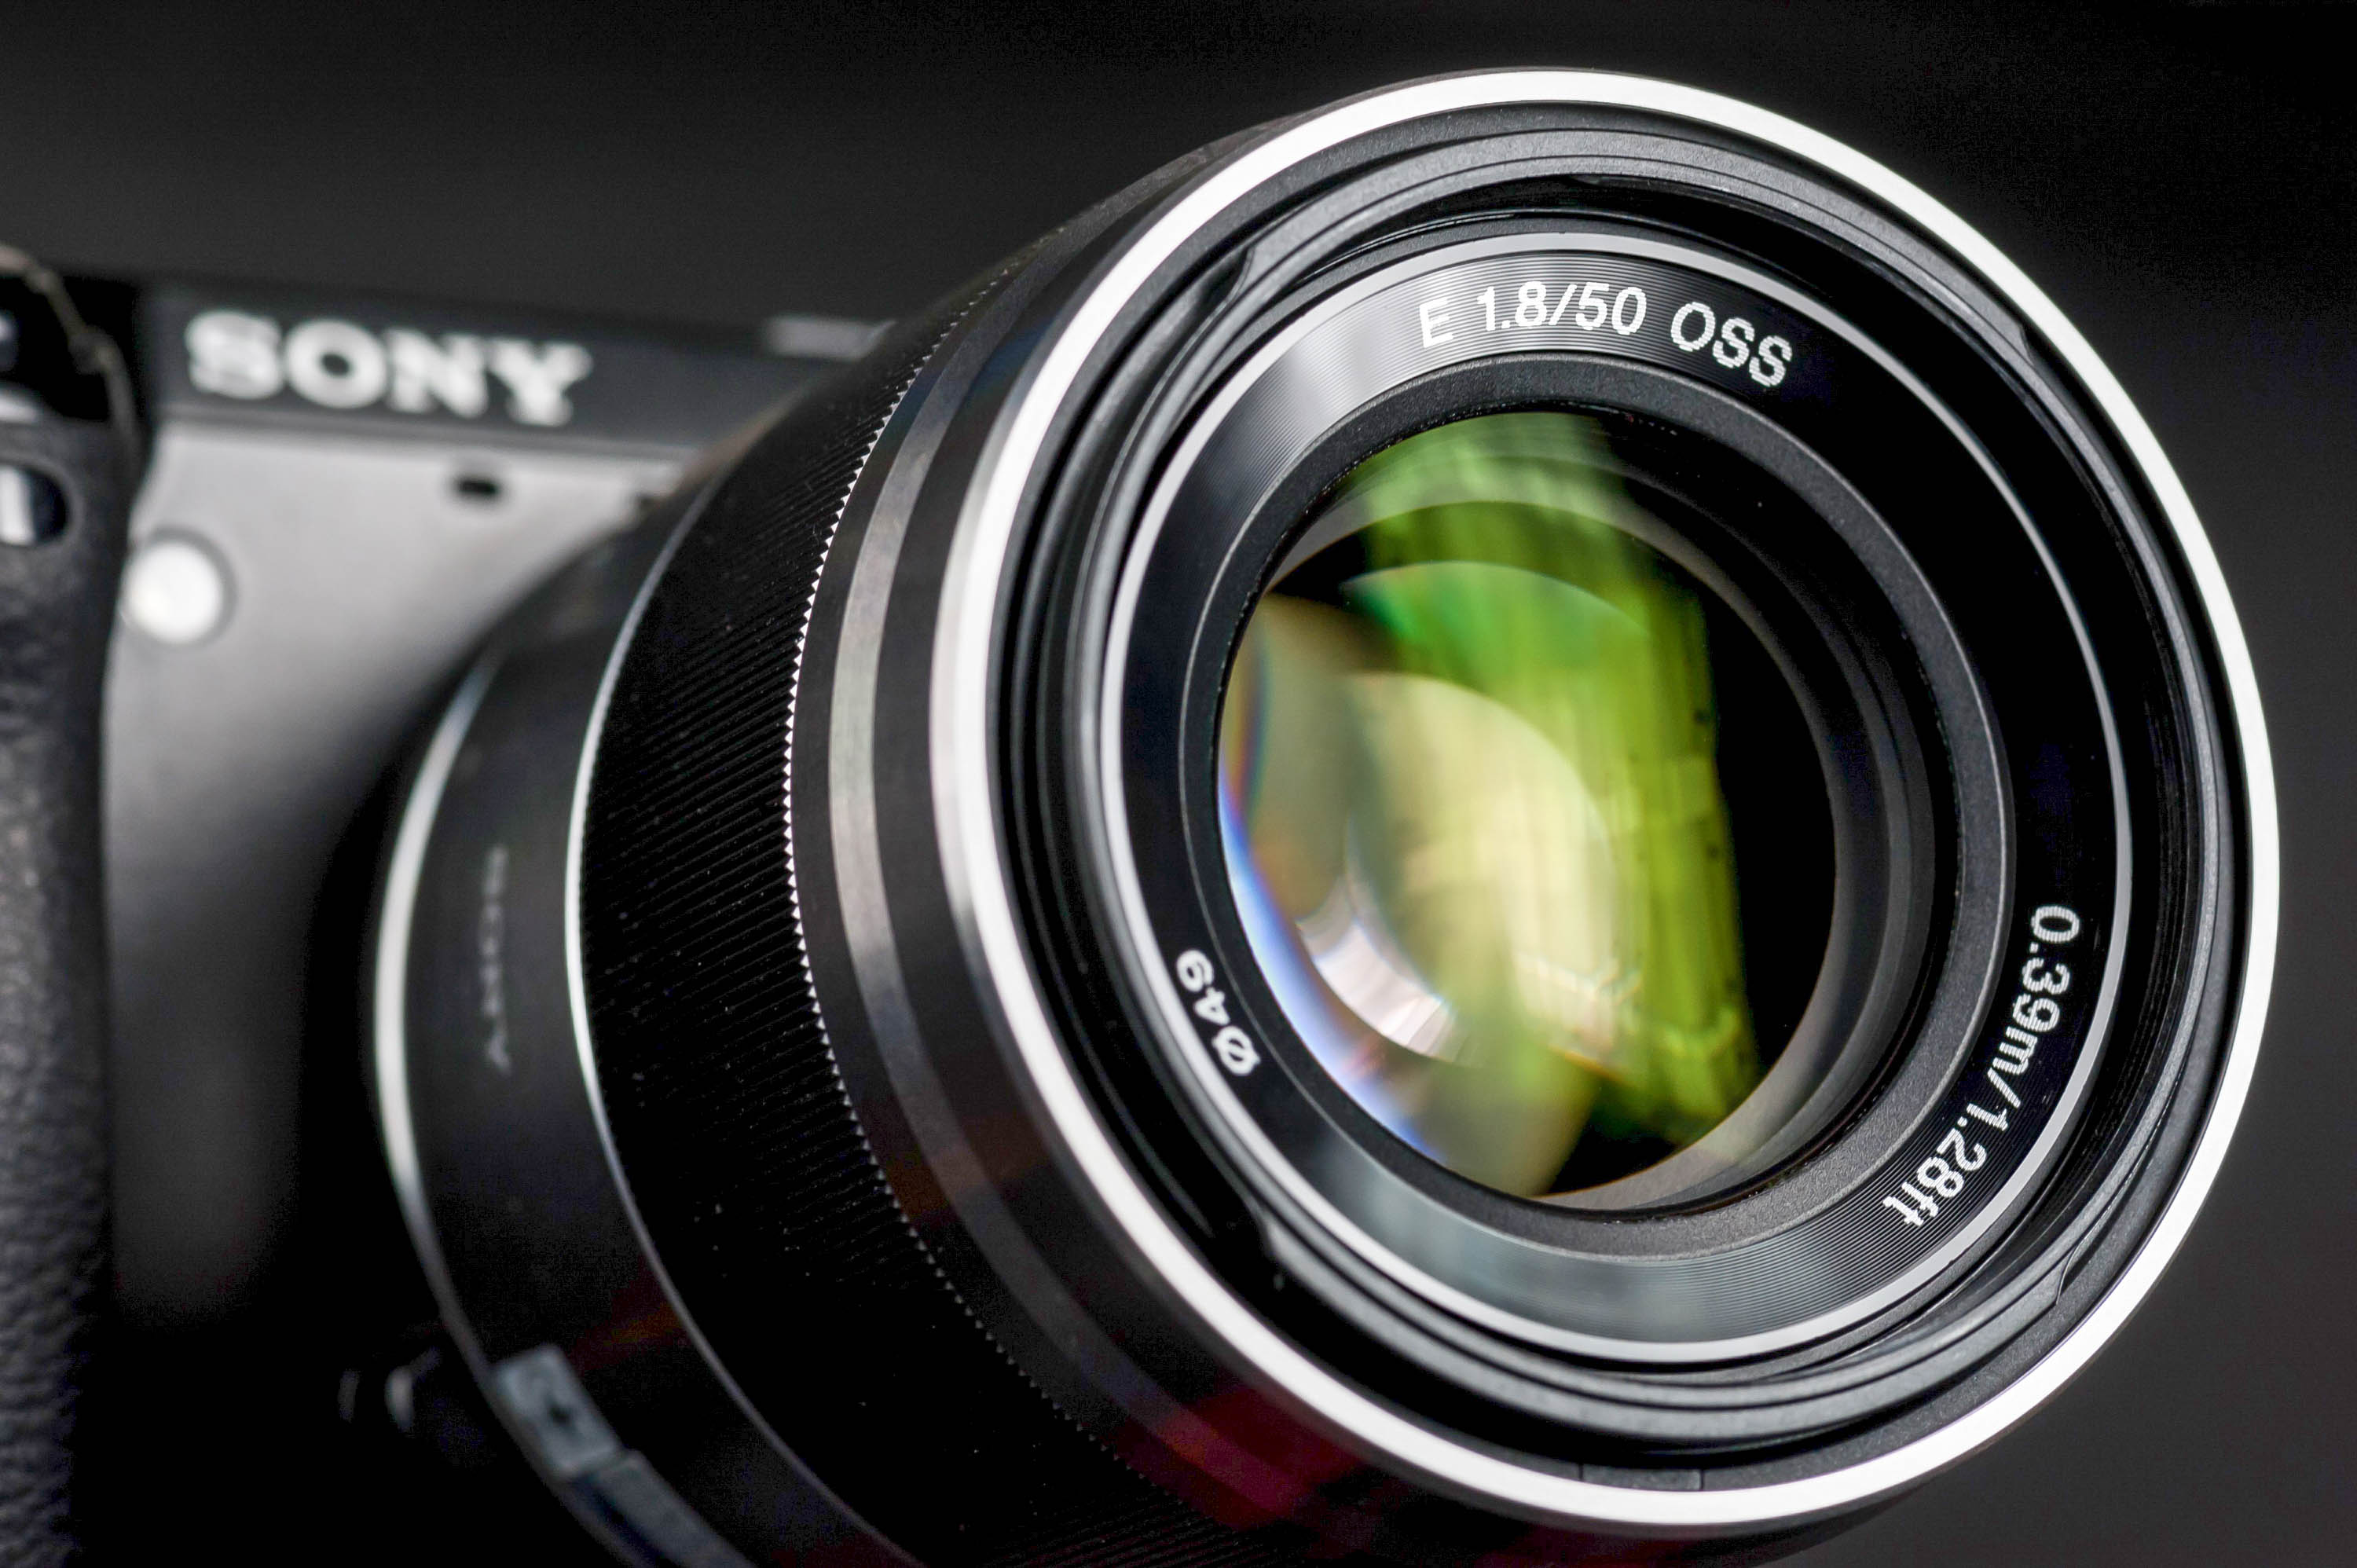 Sony Products Some Amazing HD Wallpapers And Images In